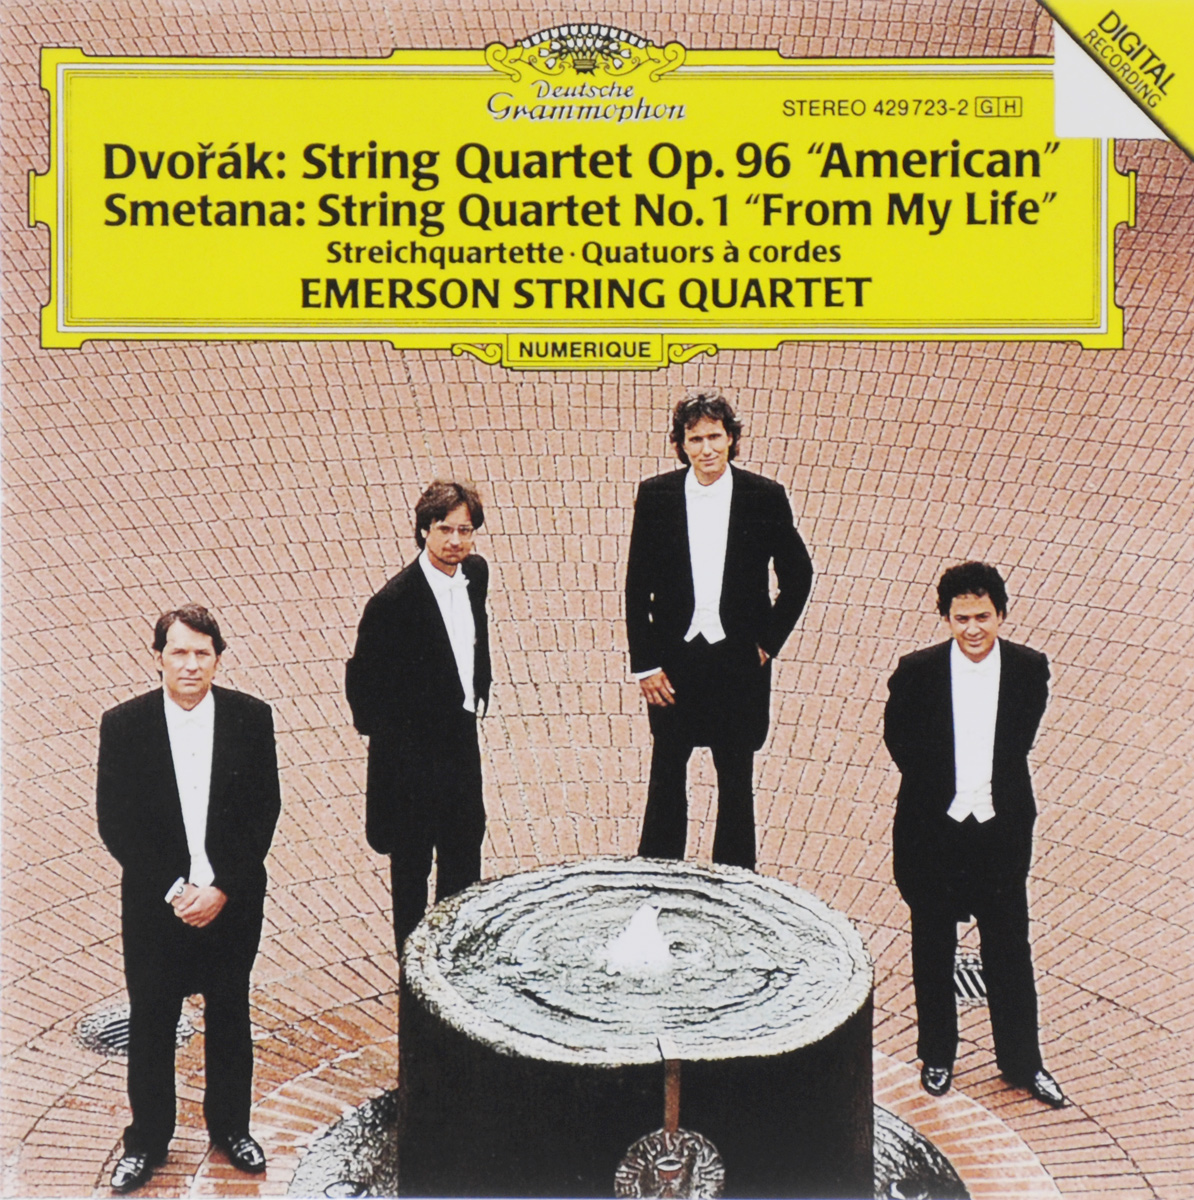 Emerson String Quartet Emerson String Quartet. String Quartet Op. 96 American / String Quartet No. 1 From My Life потолочный светодиодный светильник horoz 036 007 0006